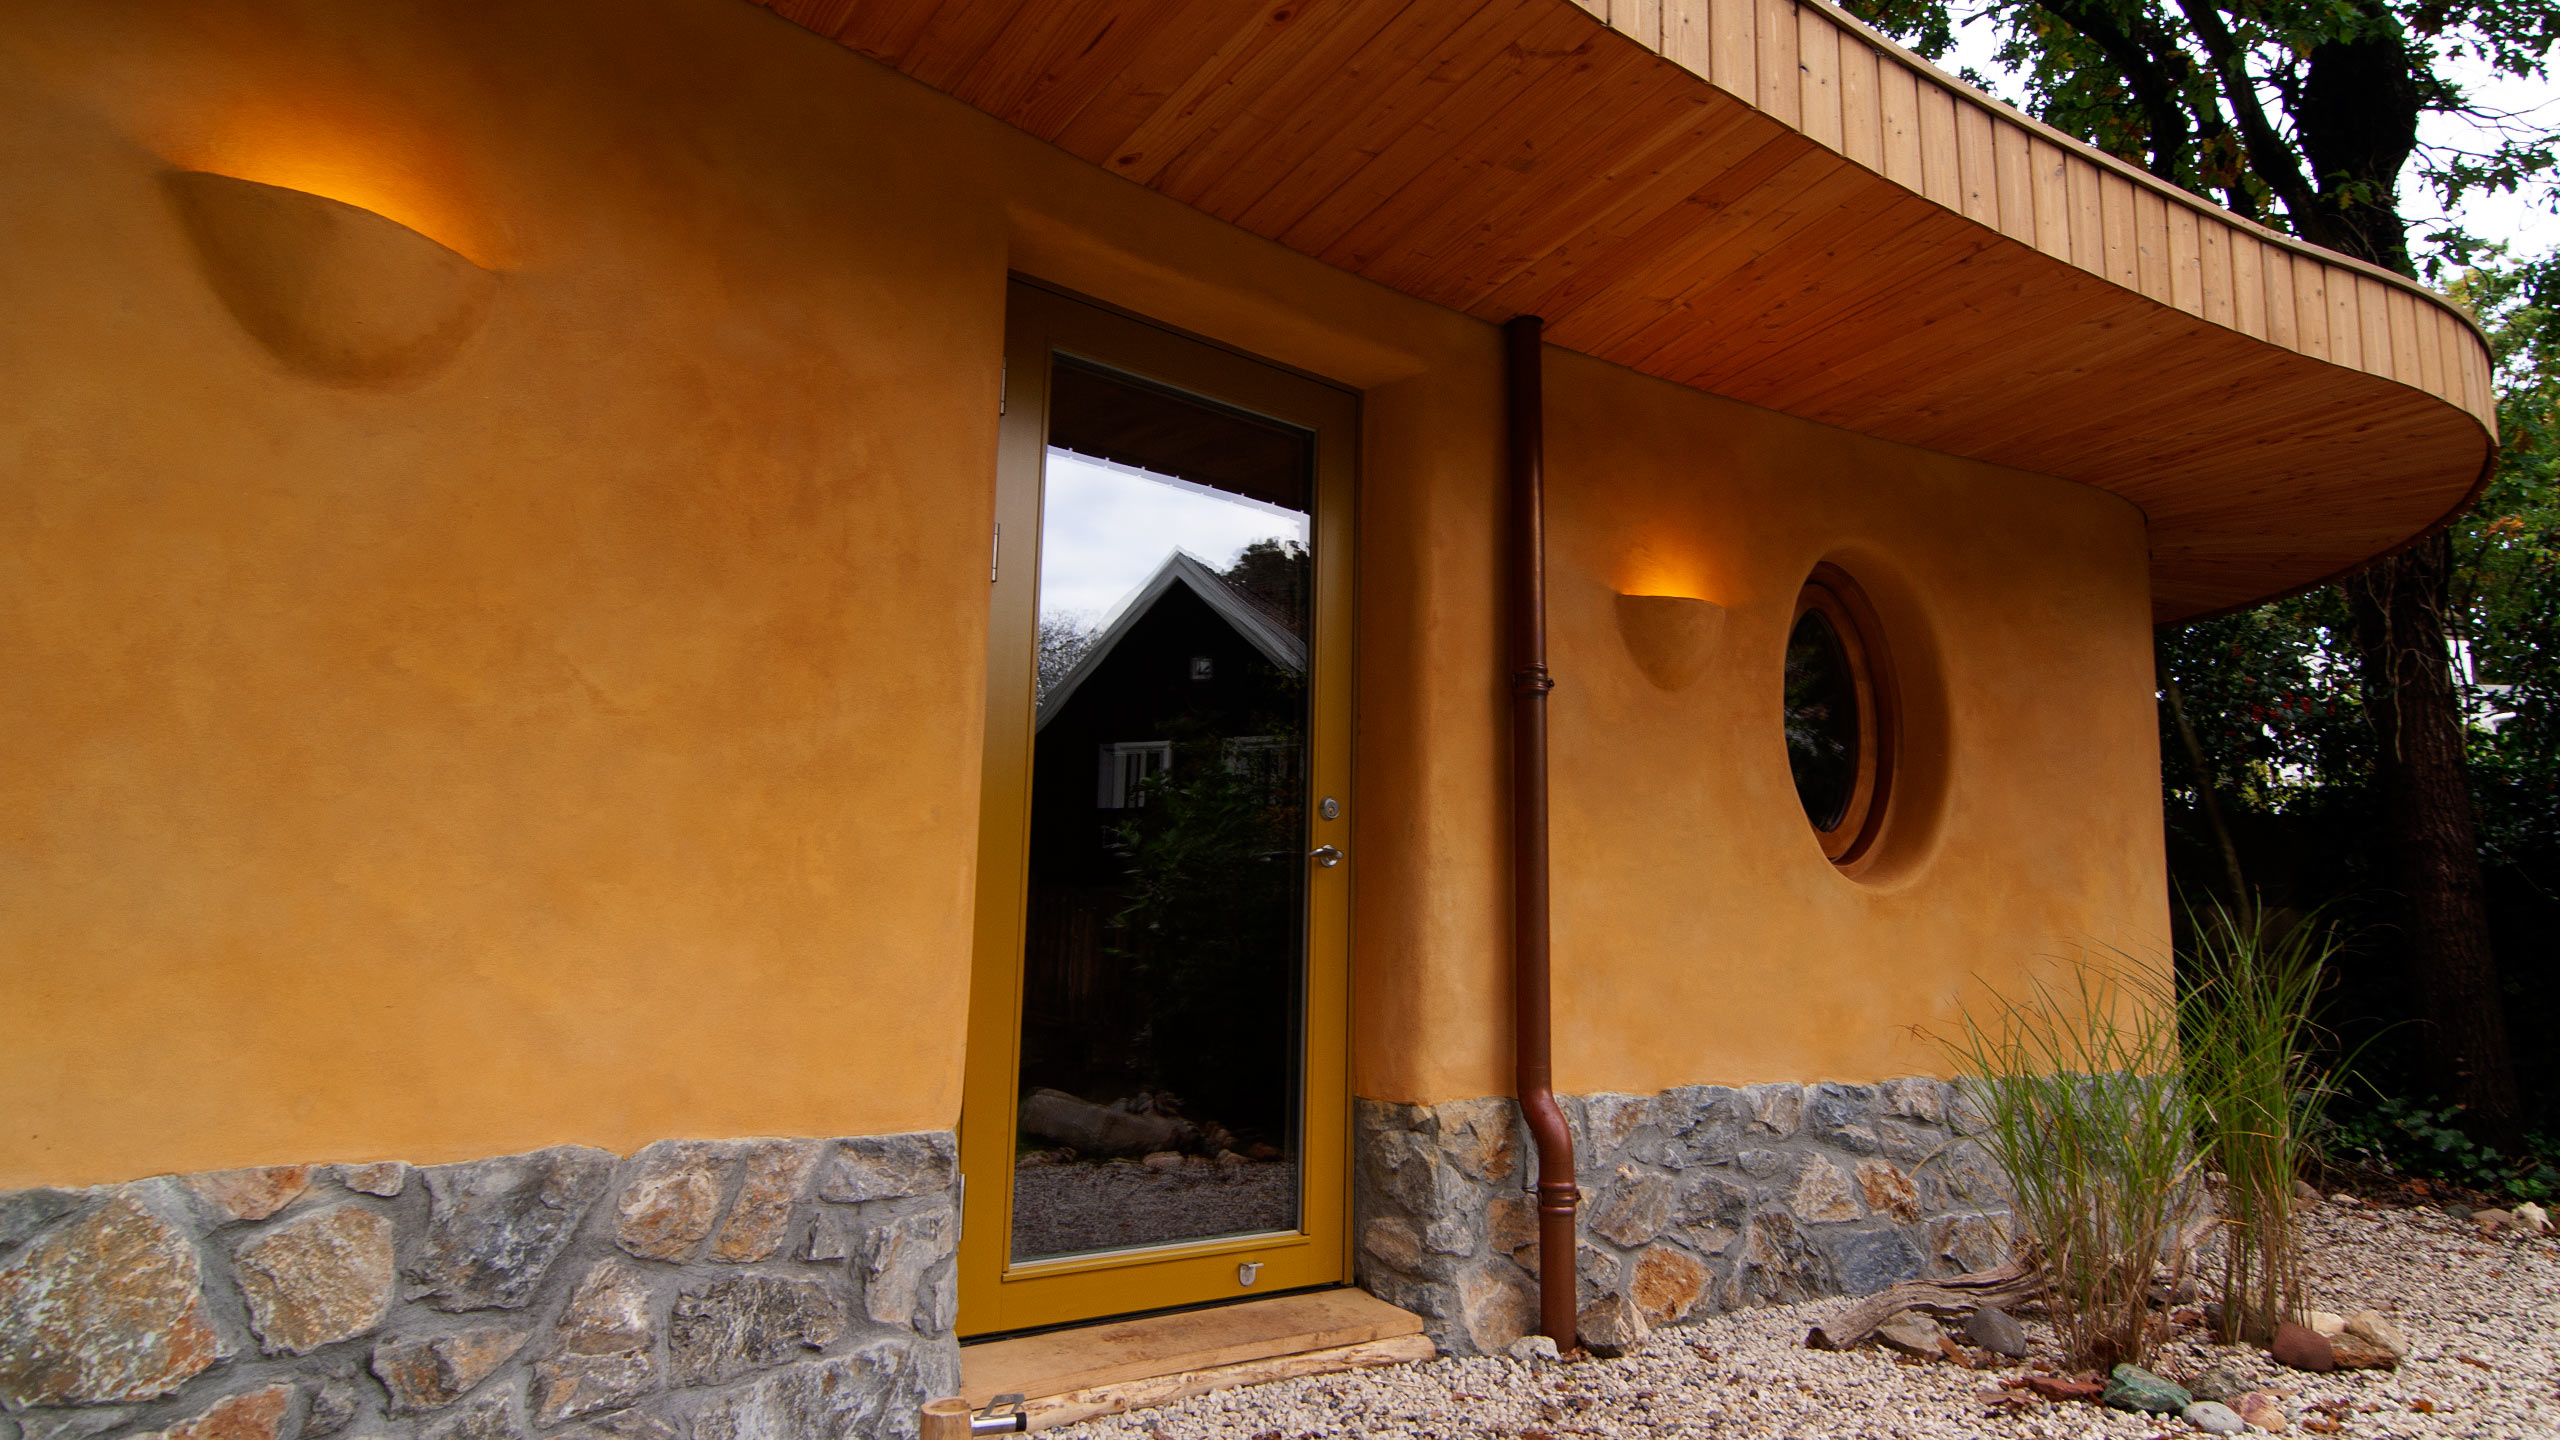 Commercial - Meditation House, Front facade